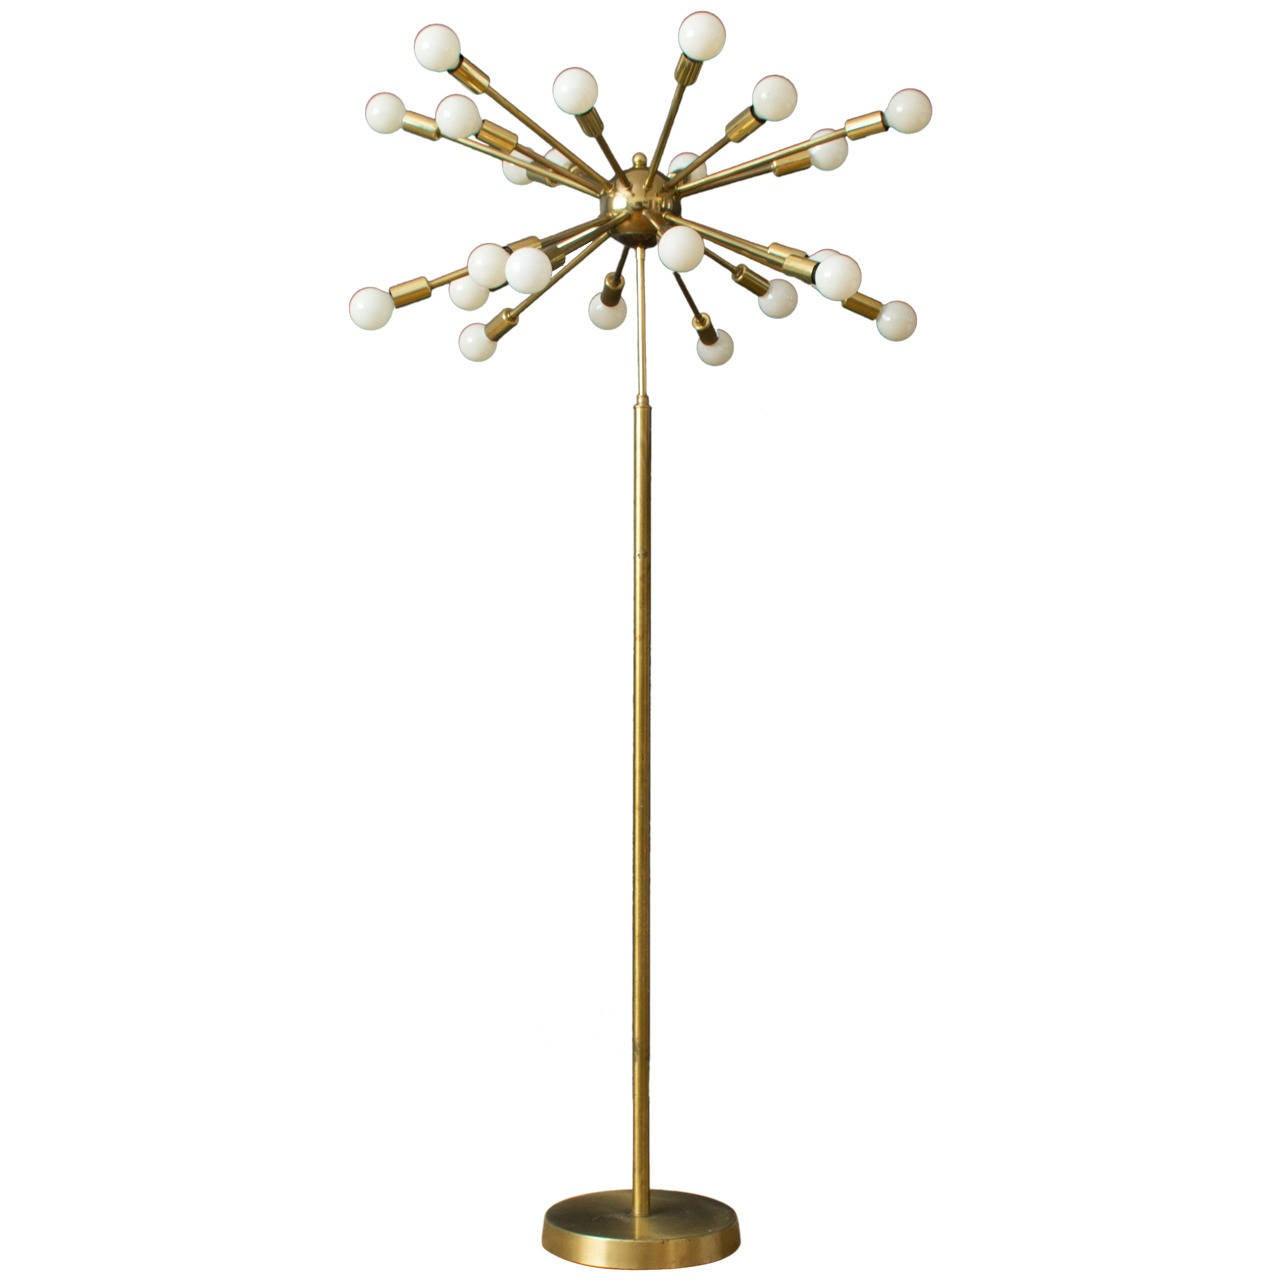 vintage mid century sputnik floor lamp at 1stdibs. Black Bedroom Furniture Sets. Home Design Ideas